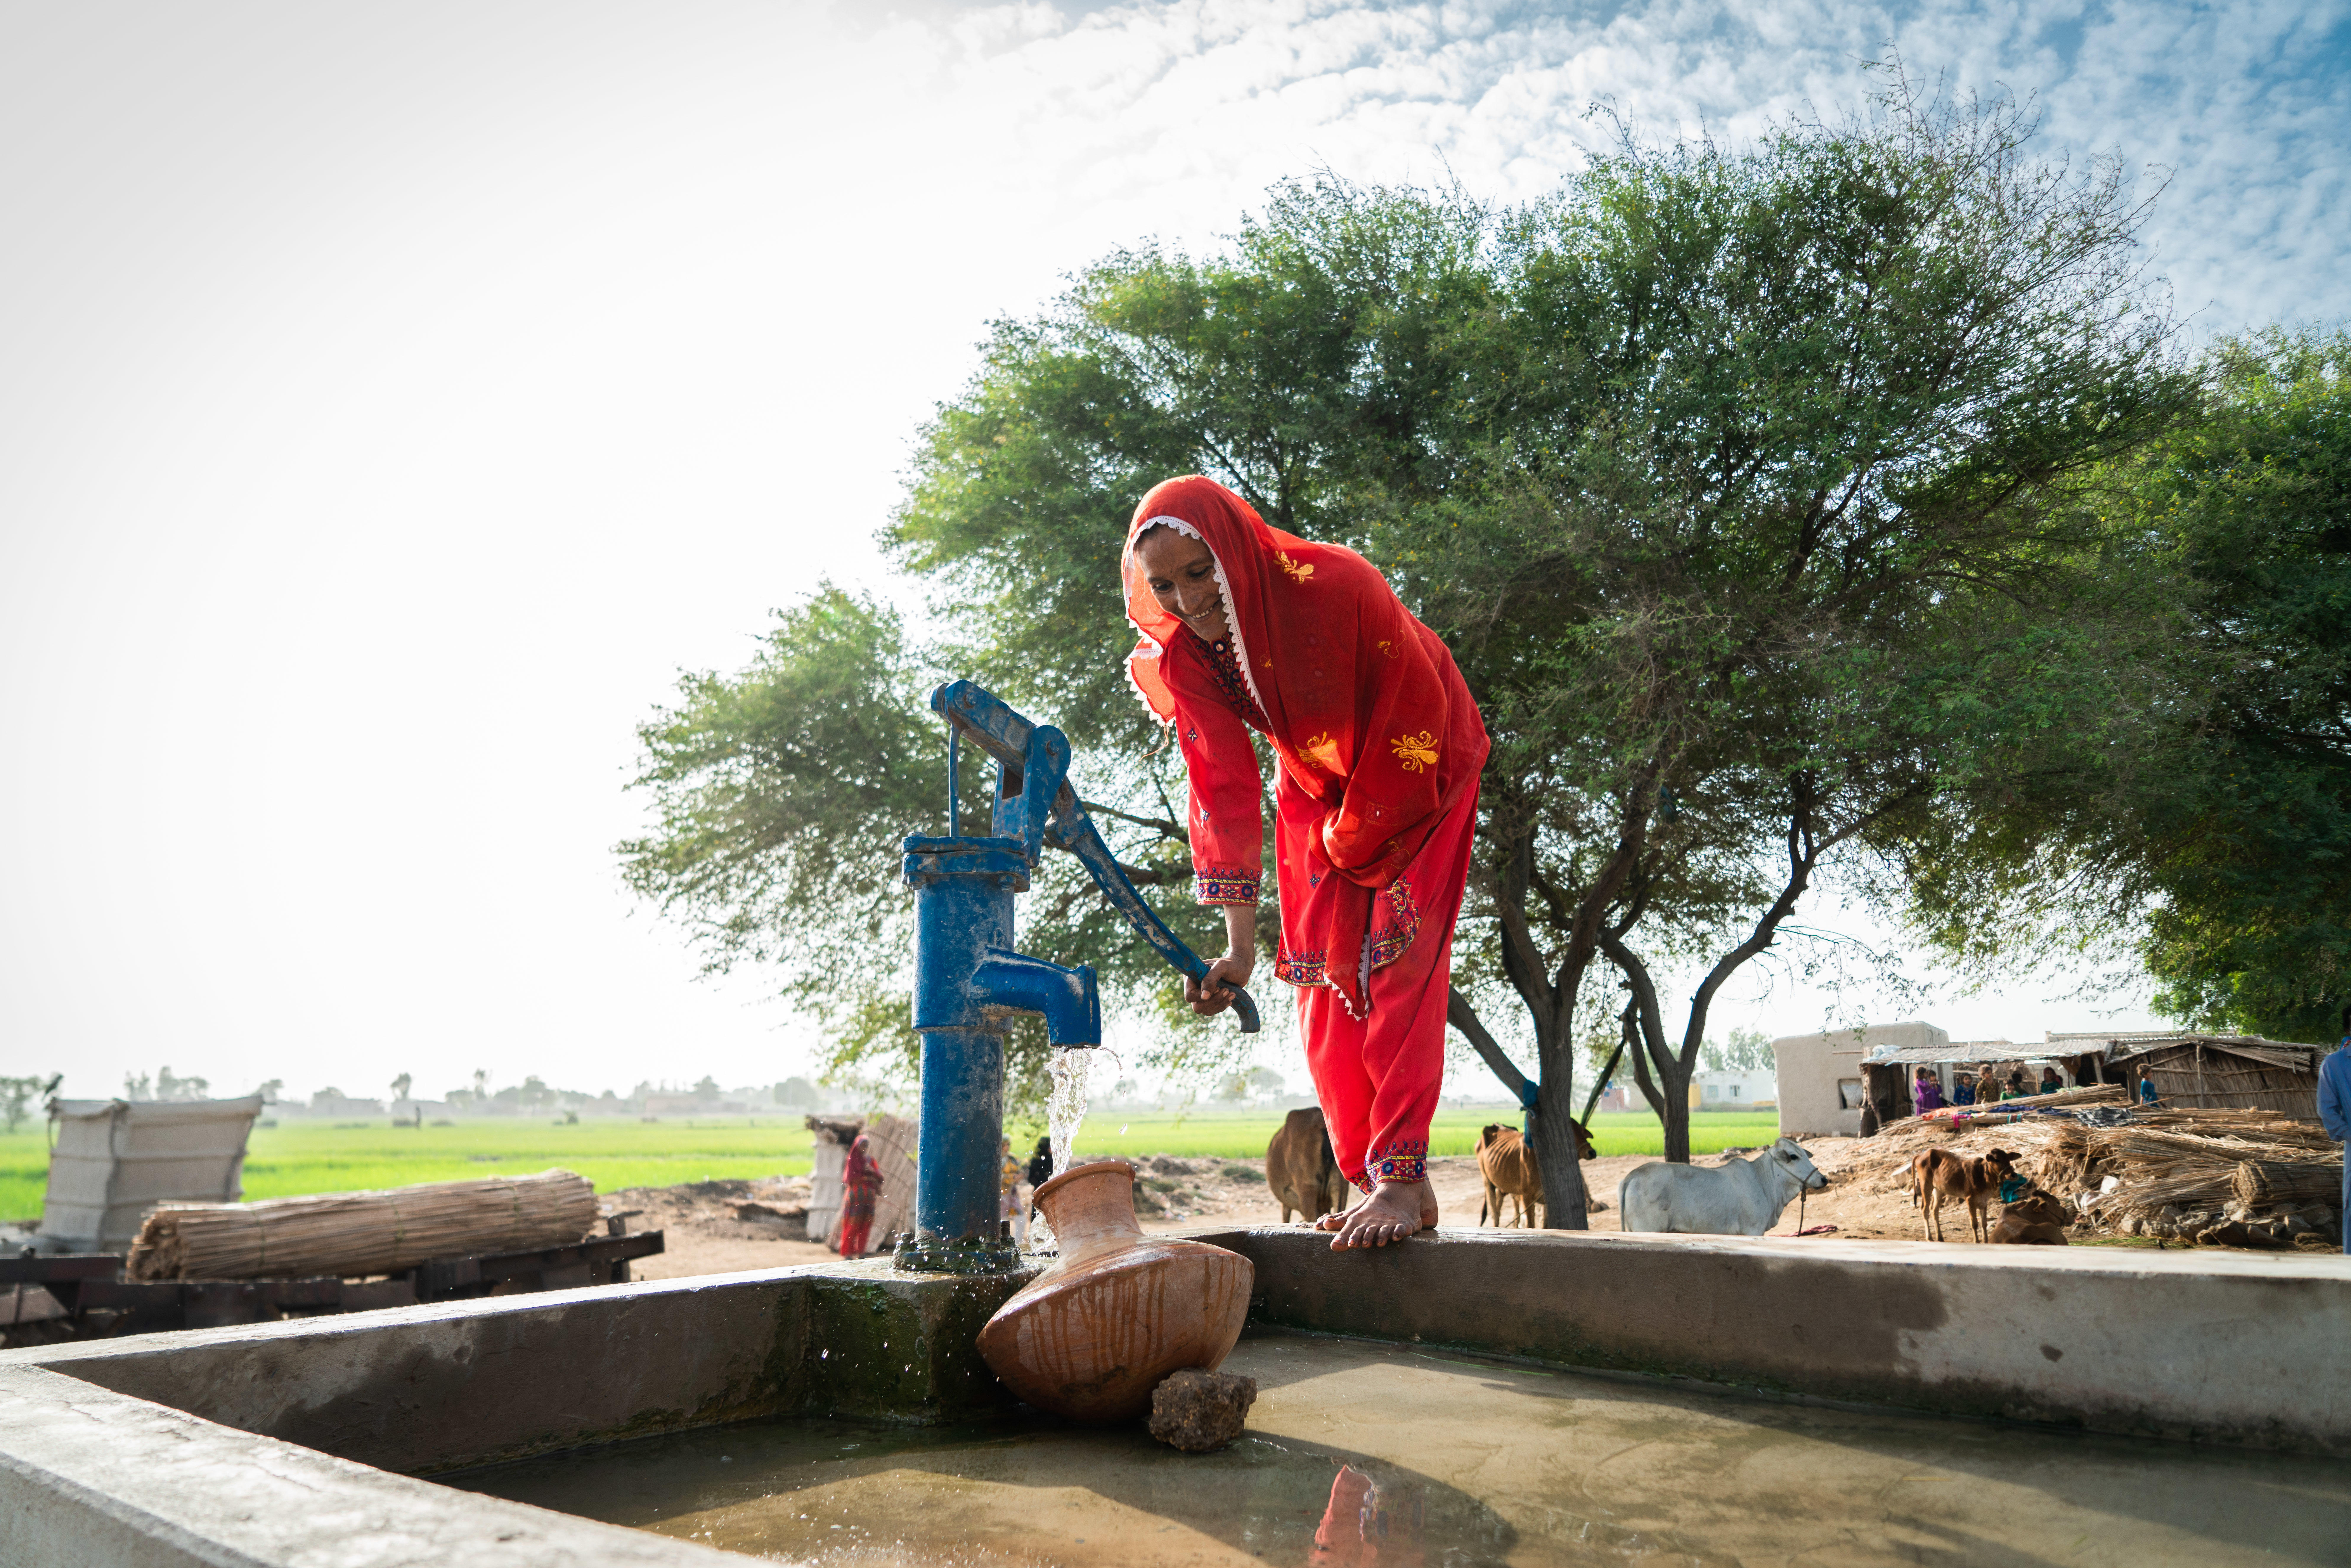 Amina fetching water from a WaterAid installed hand pump close to her home in Pakistan.